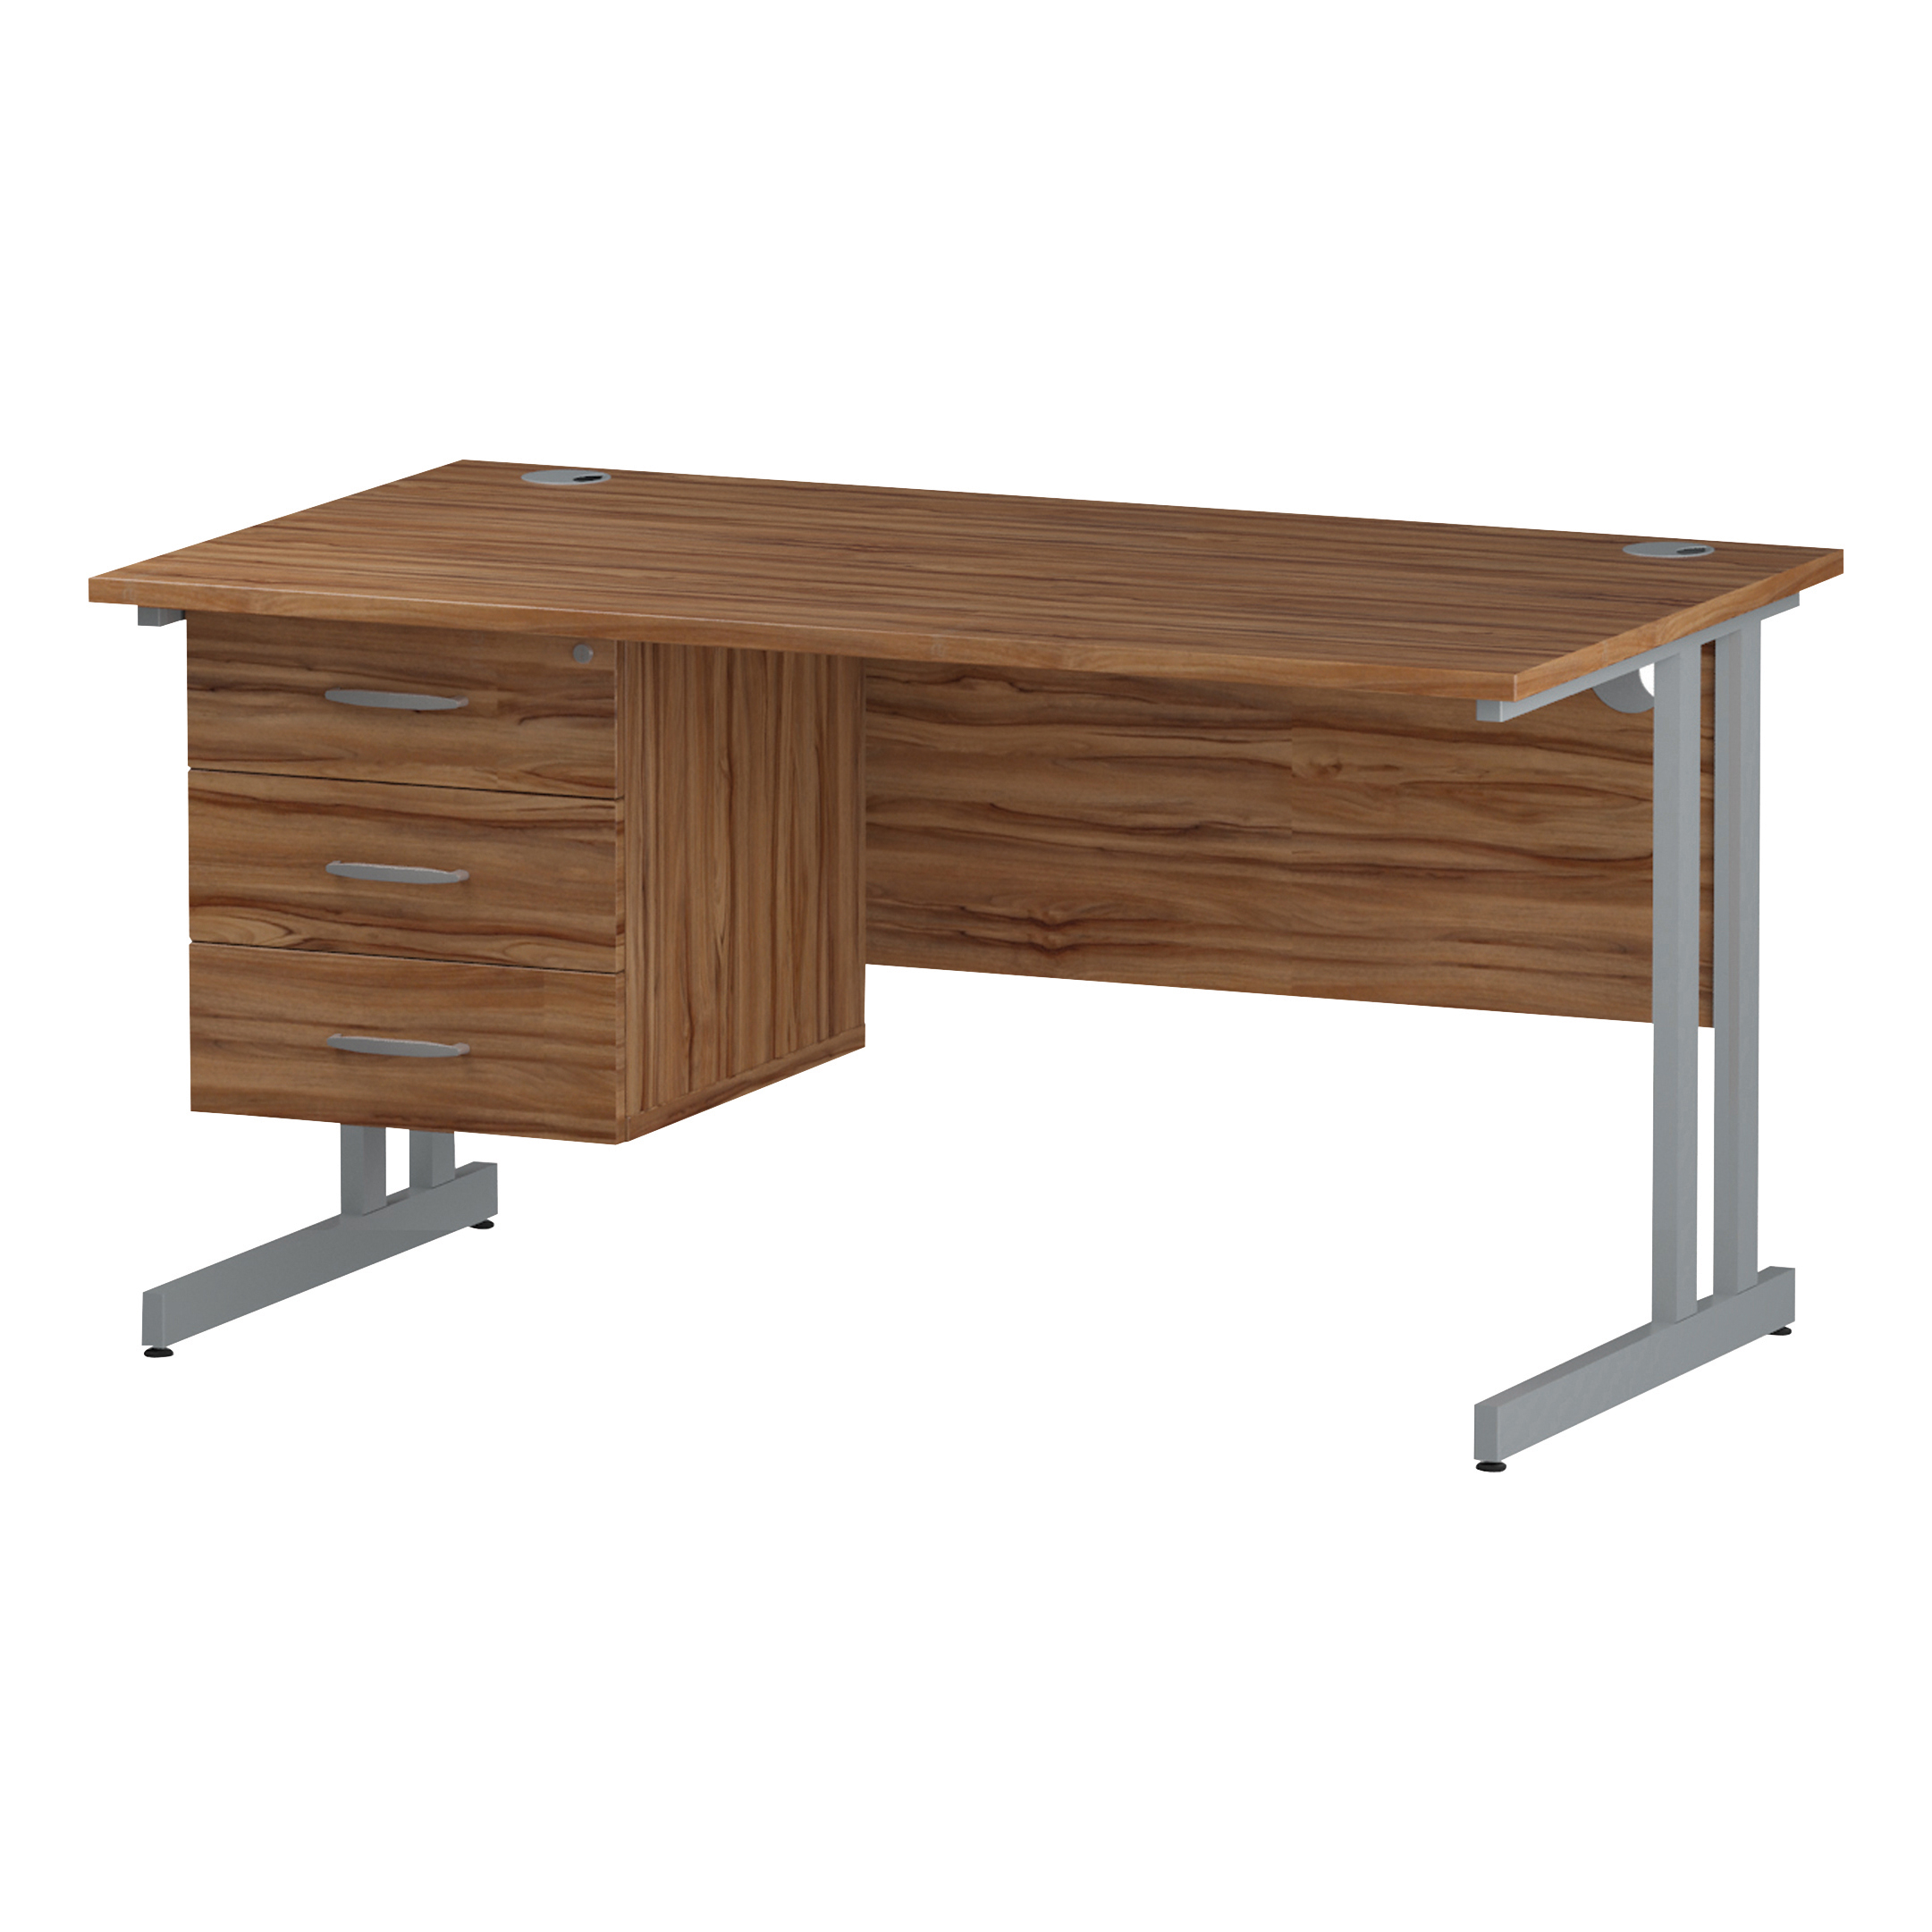 Trexus Rectangular Desk Silver Cantilever Leg 1400x800mm Fixed Pedestal 3 Drawers Walnut Ref I001928